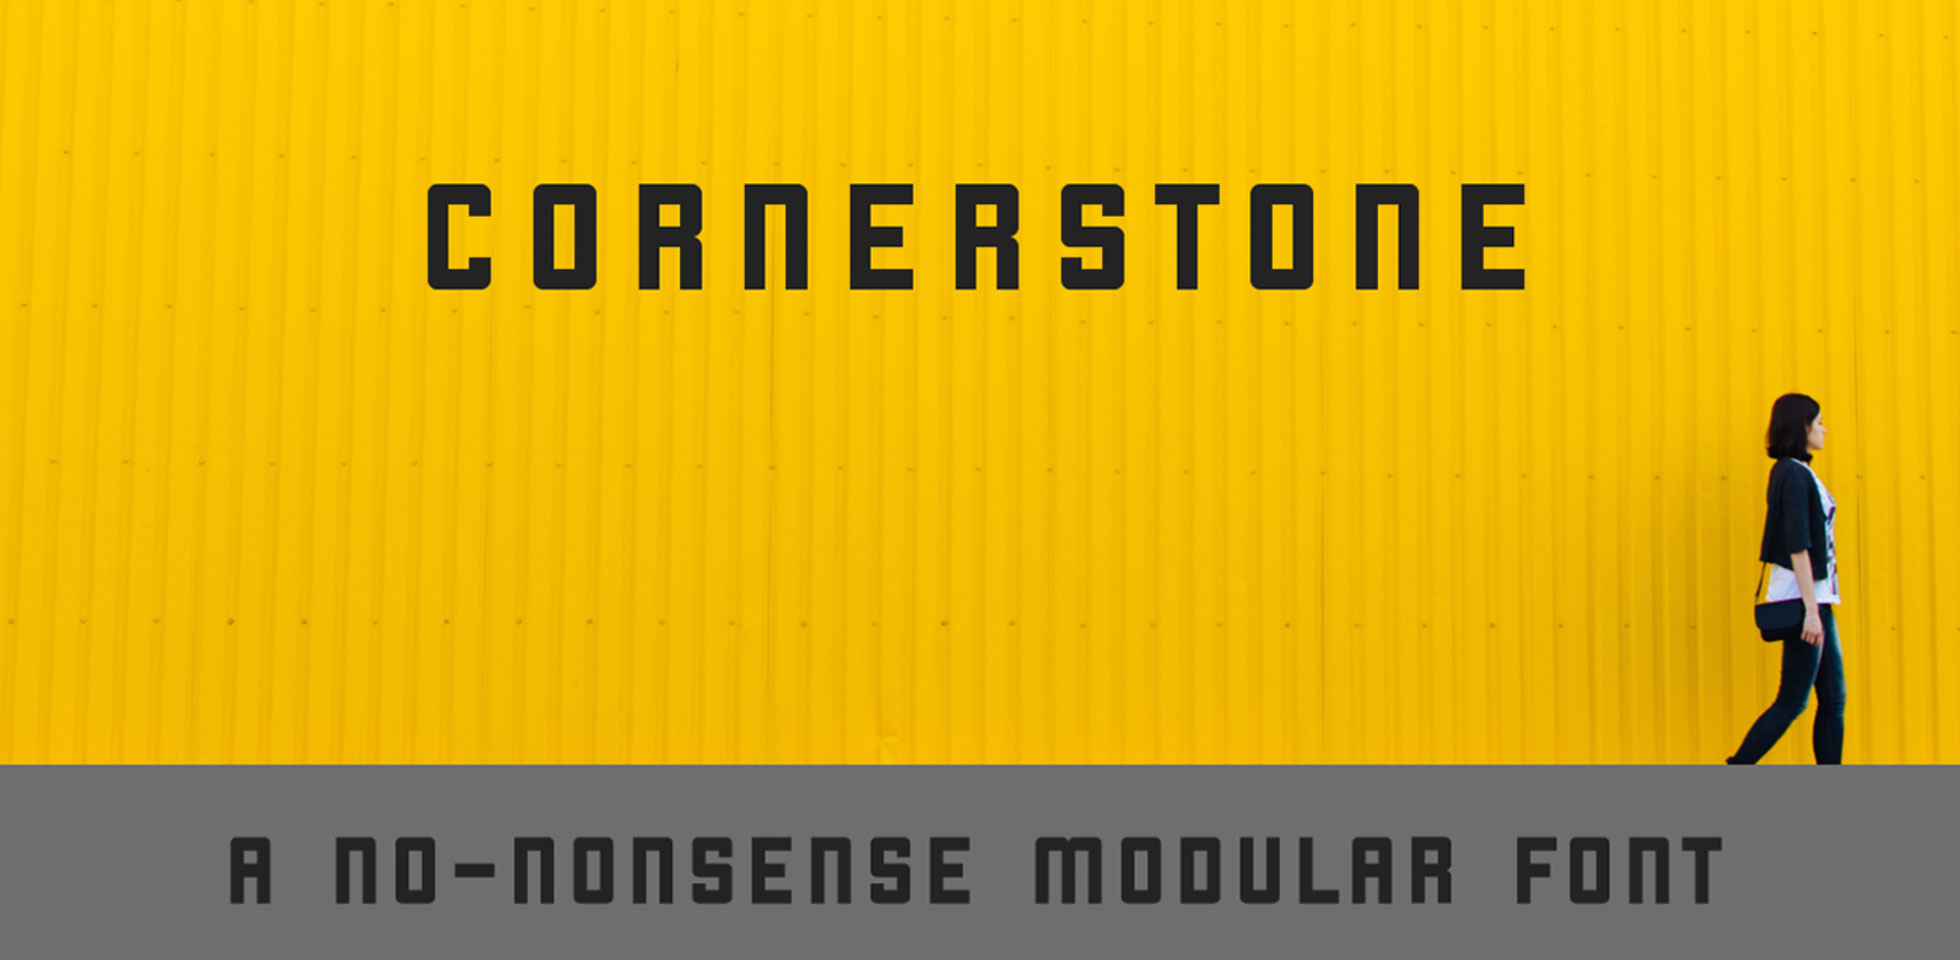 Free Download: Cornerstone Font